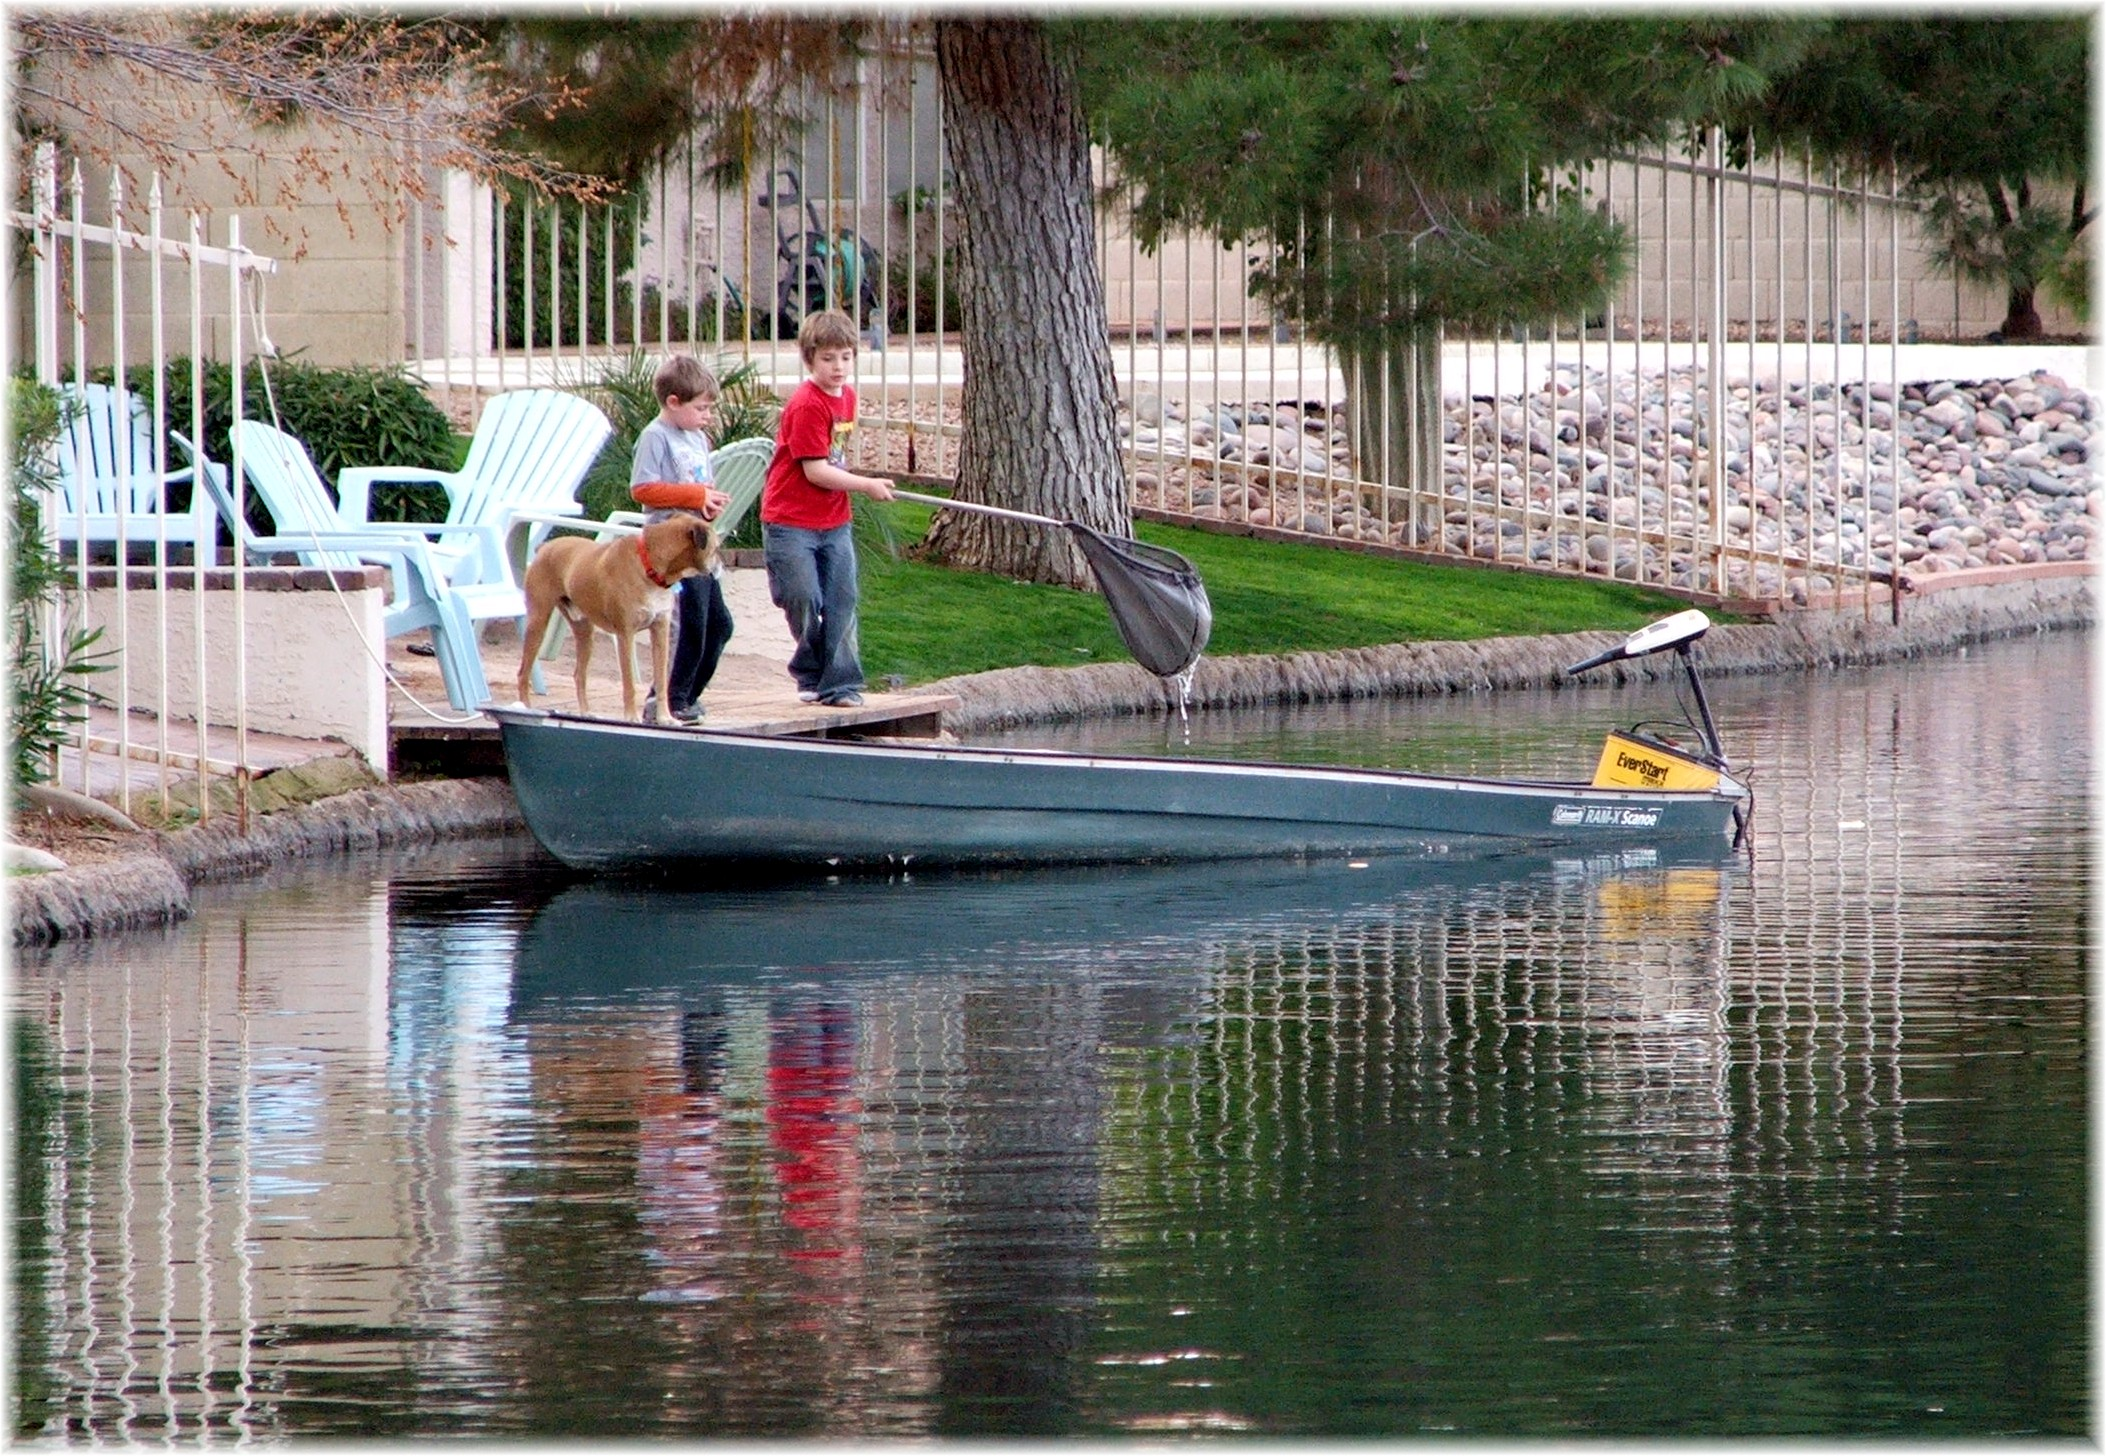 pecos ranch boating in waterfront community in chandler phoenix